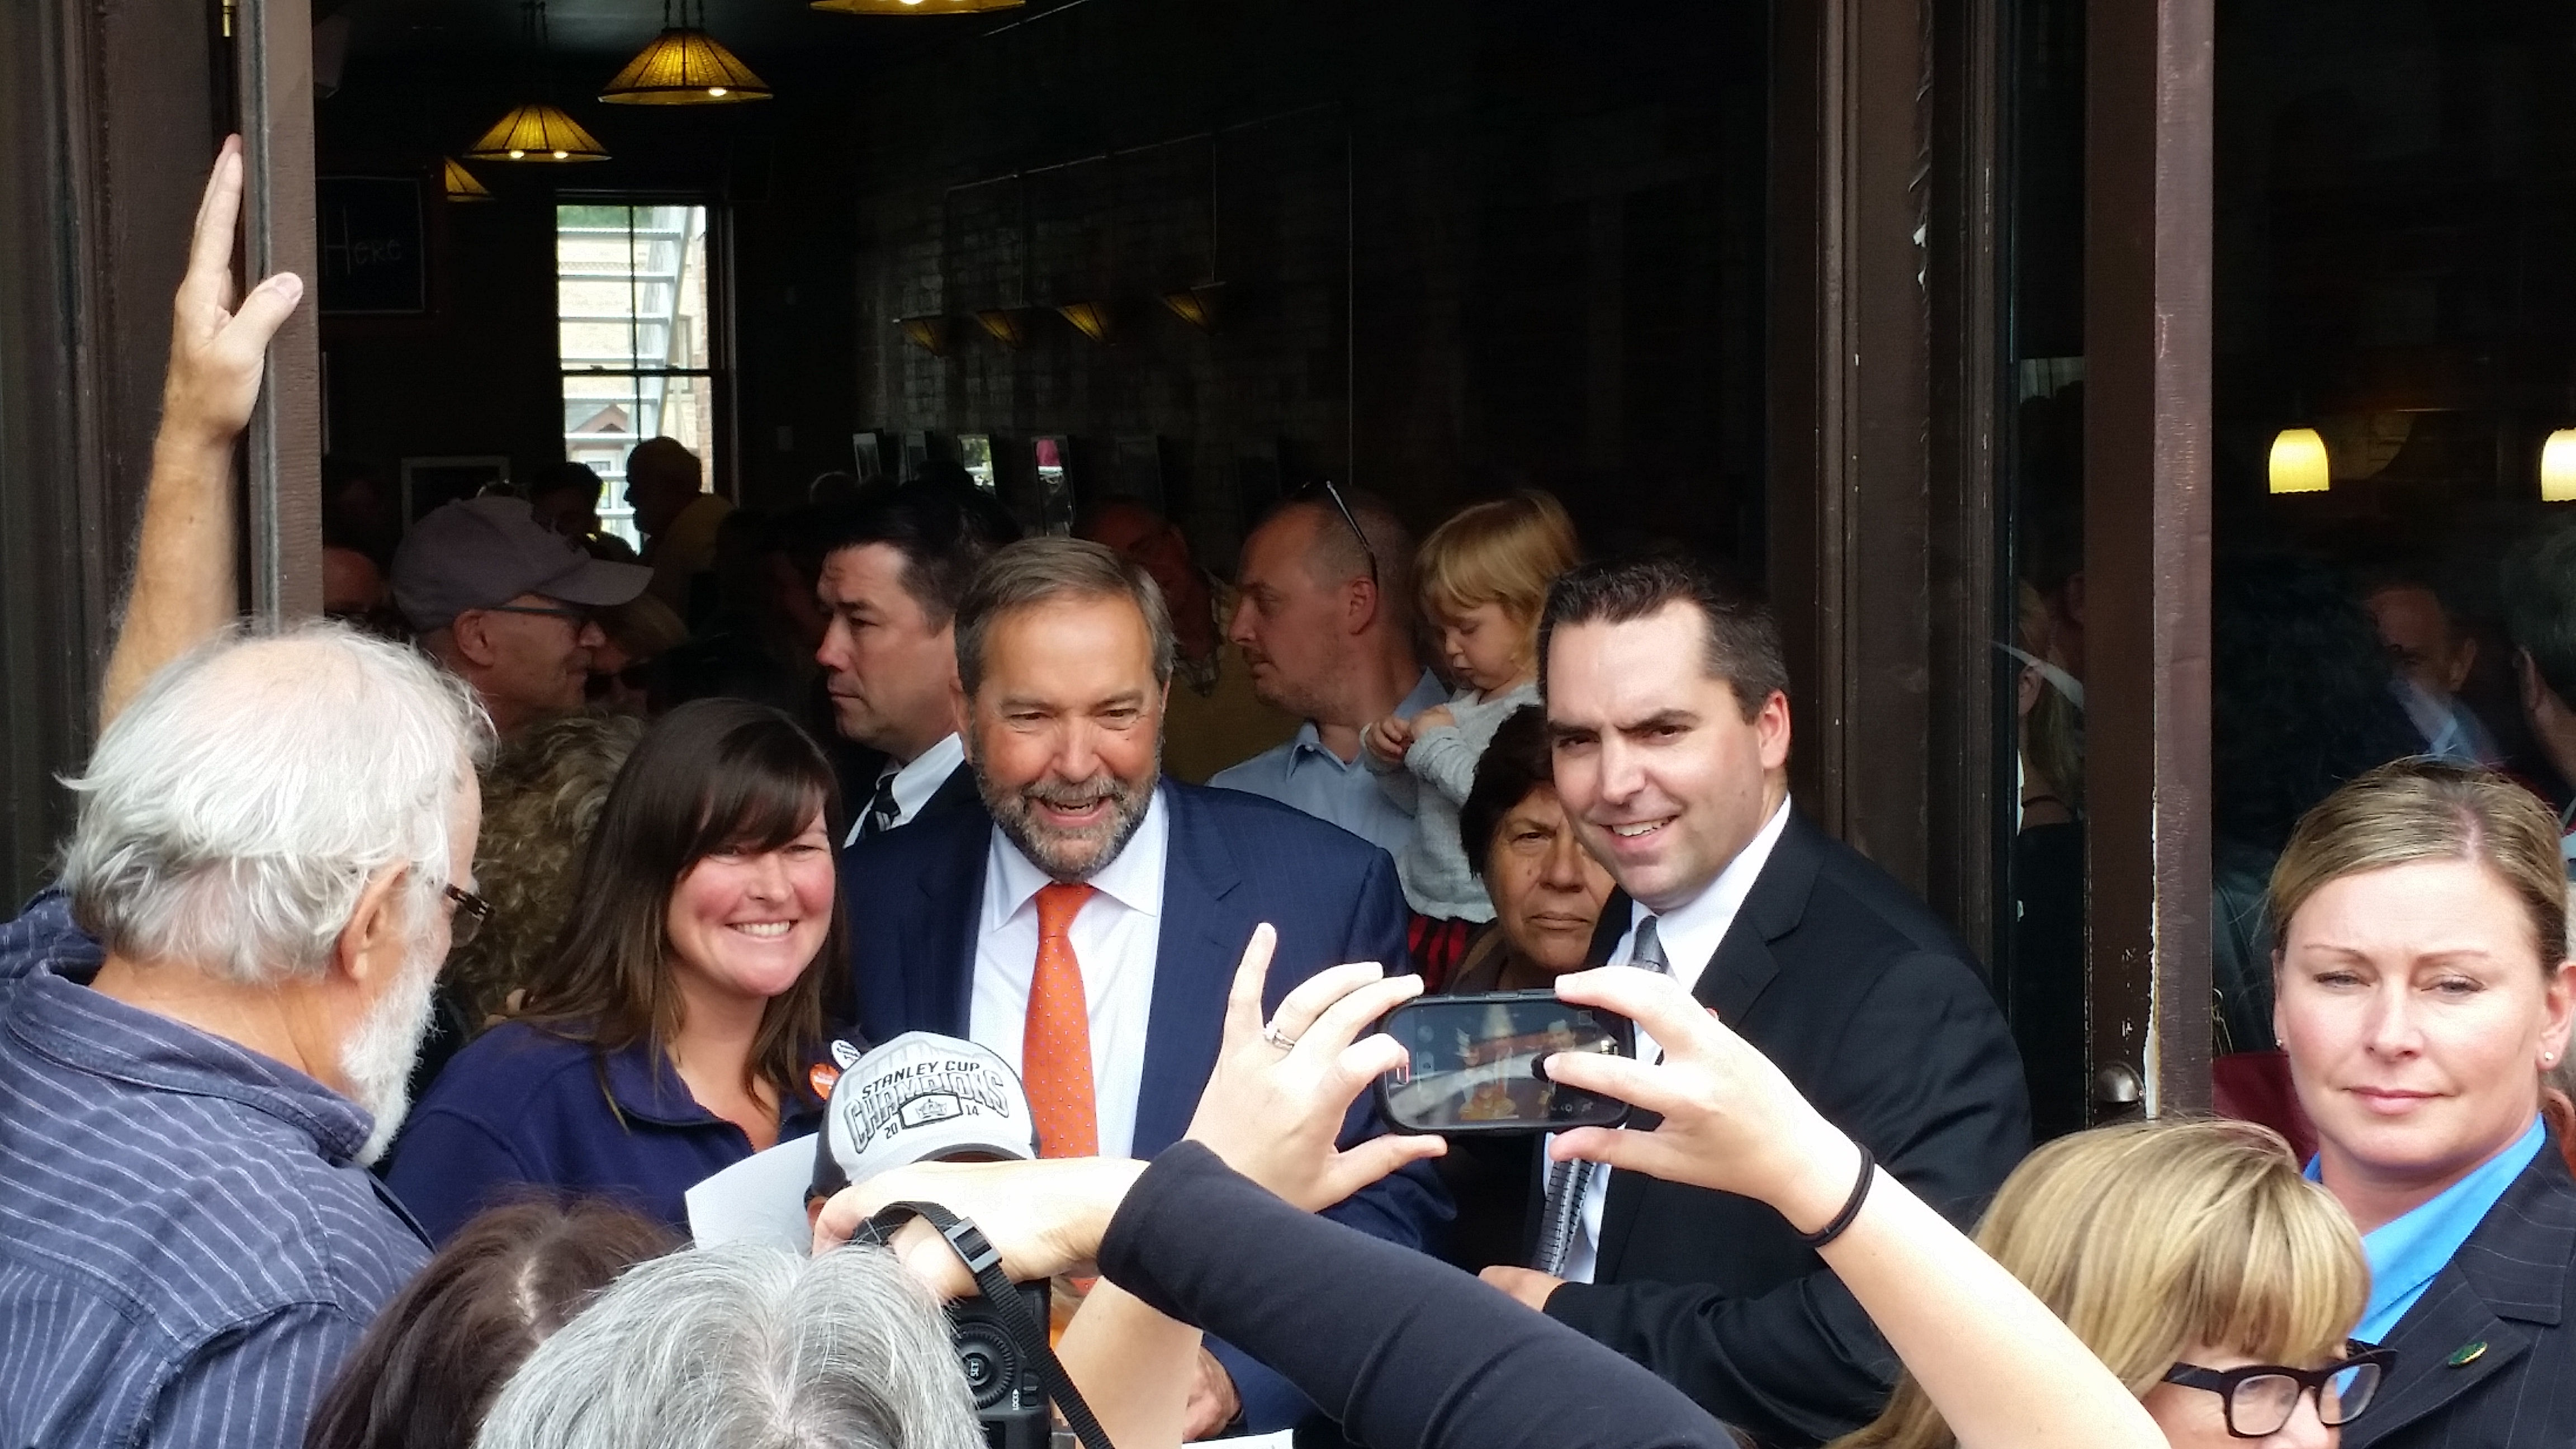 NDP leader Tom Mulcair makes a campaign stop in Stratford Wednesday. (photo by Victor Young)